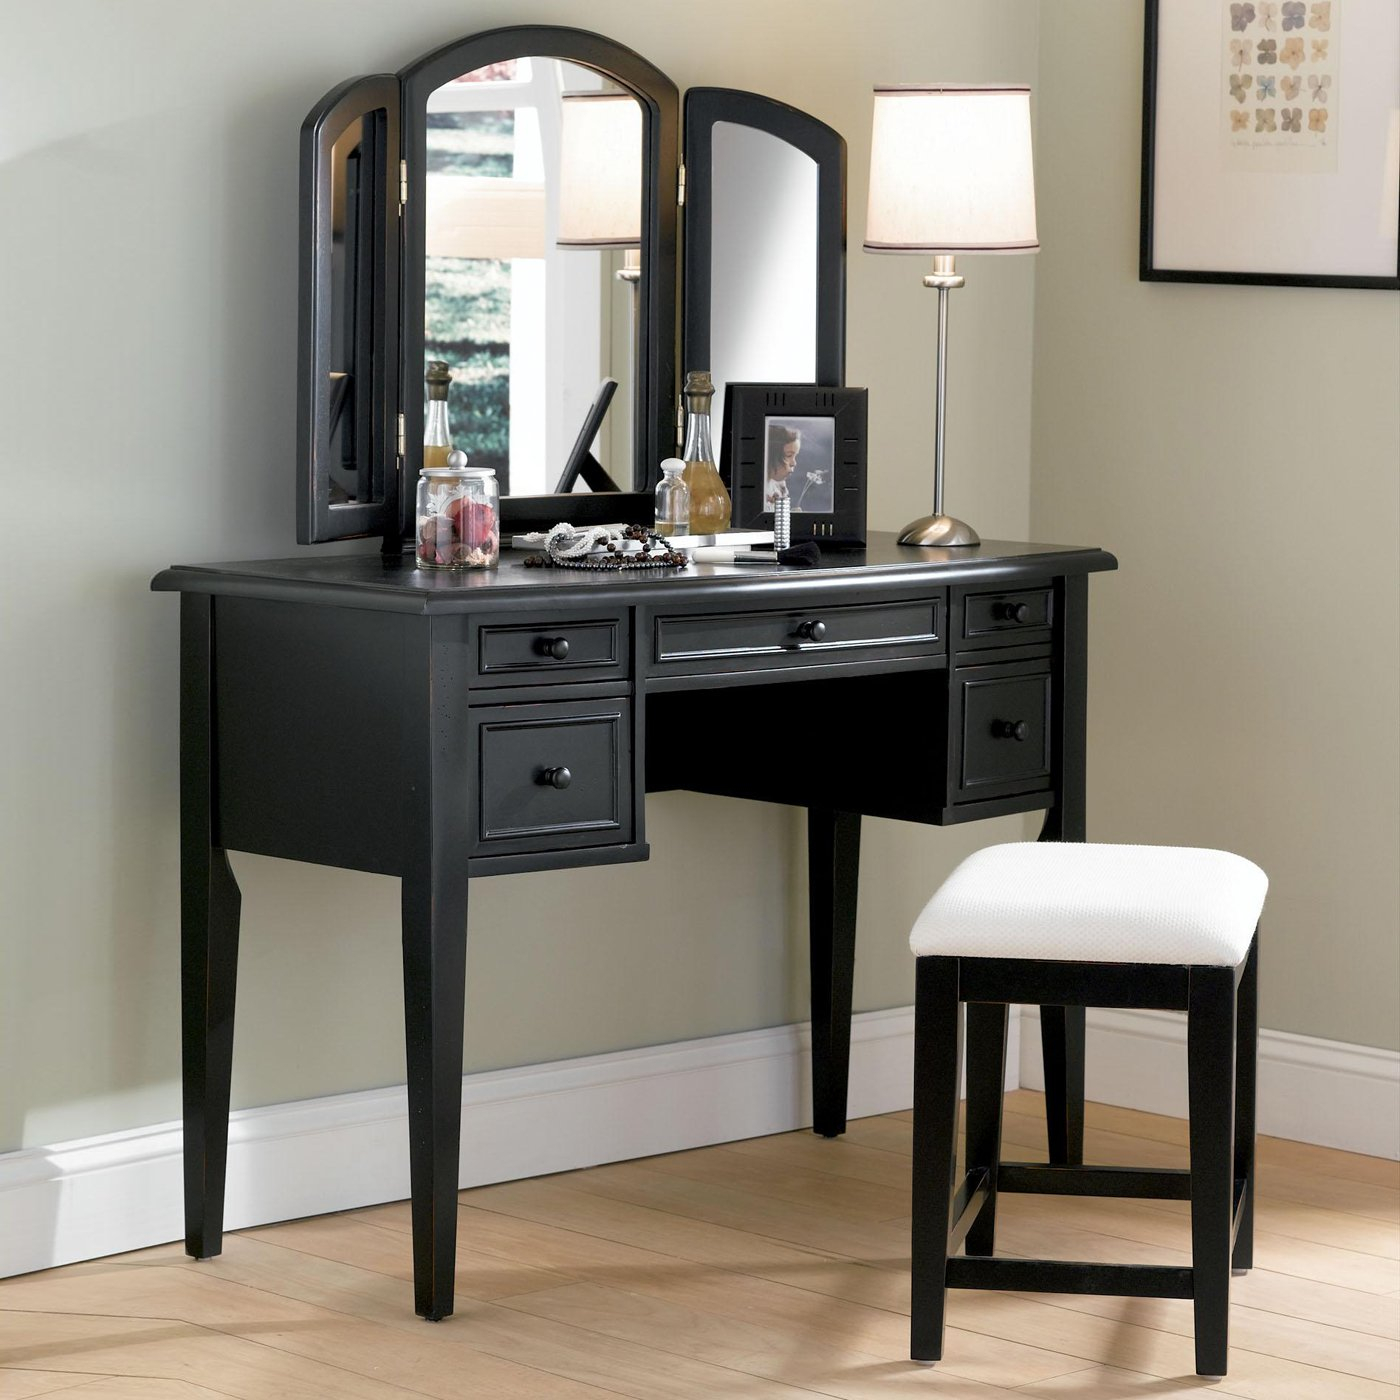 Classic Bedroom Vanity Table With Black Wooden Materials Make Up throughout 13 Some of the Coolest Tricks of How to Improve Bedroom Vanity Modern